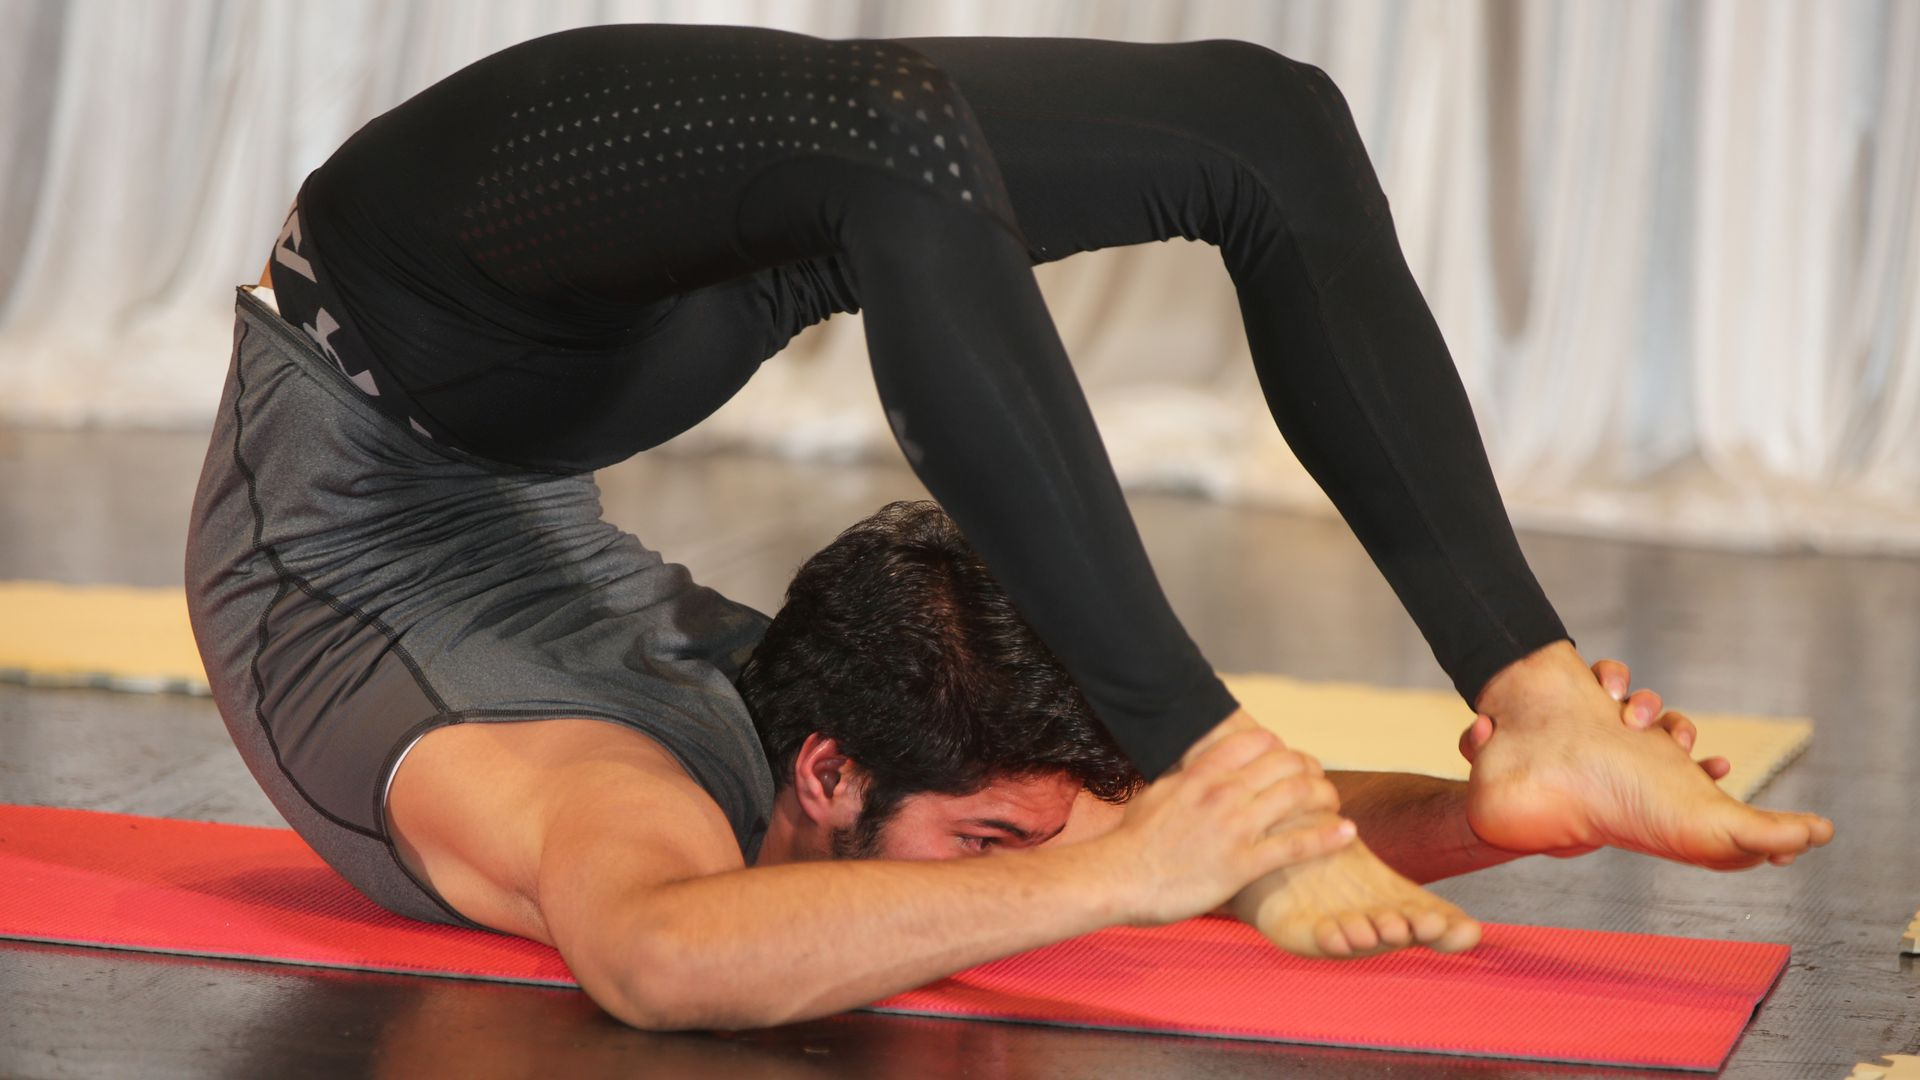 An Indian man demonstrating advanced yoga poses in Mississauga, Ontario, Canada.